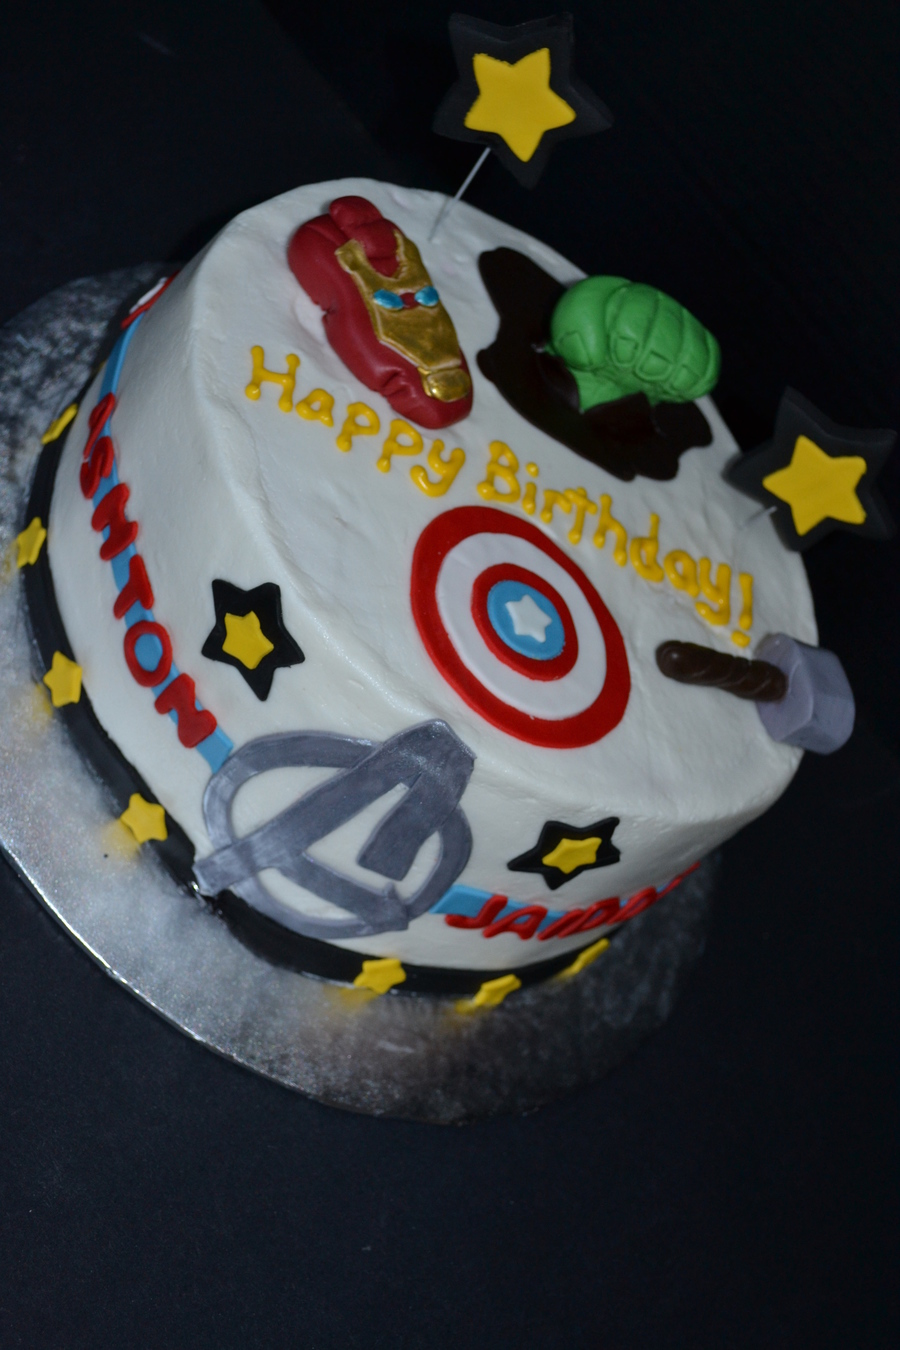 Remarkable Avengers Birthday Cake With Thor Captain America Incredible Hulk Personalised Birthday Cards Paralily Jamesorg